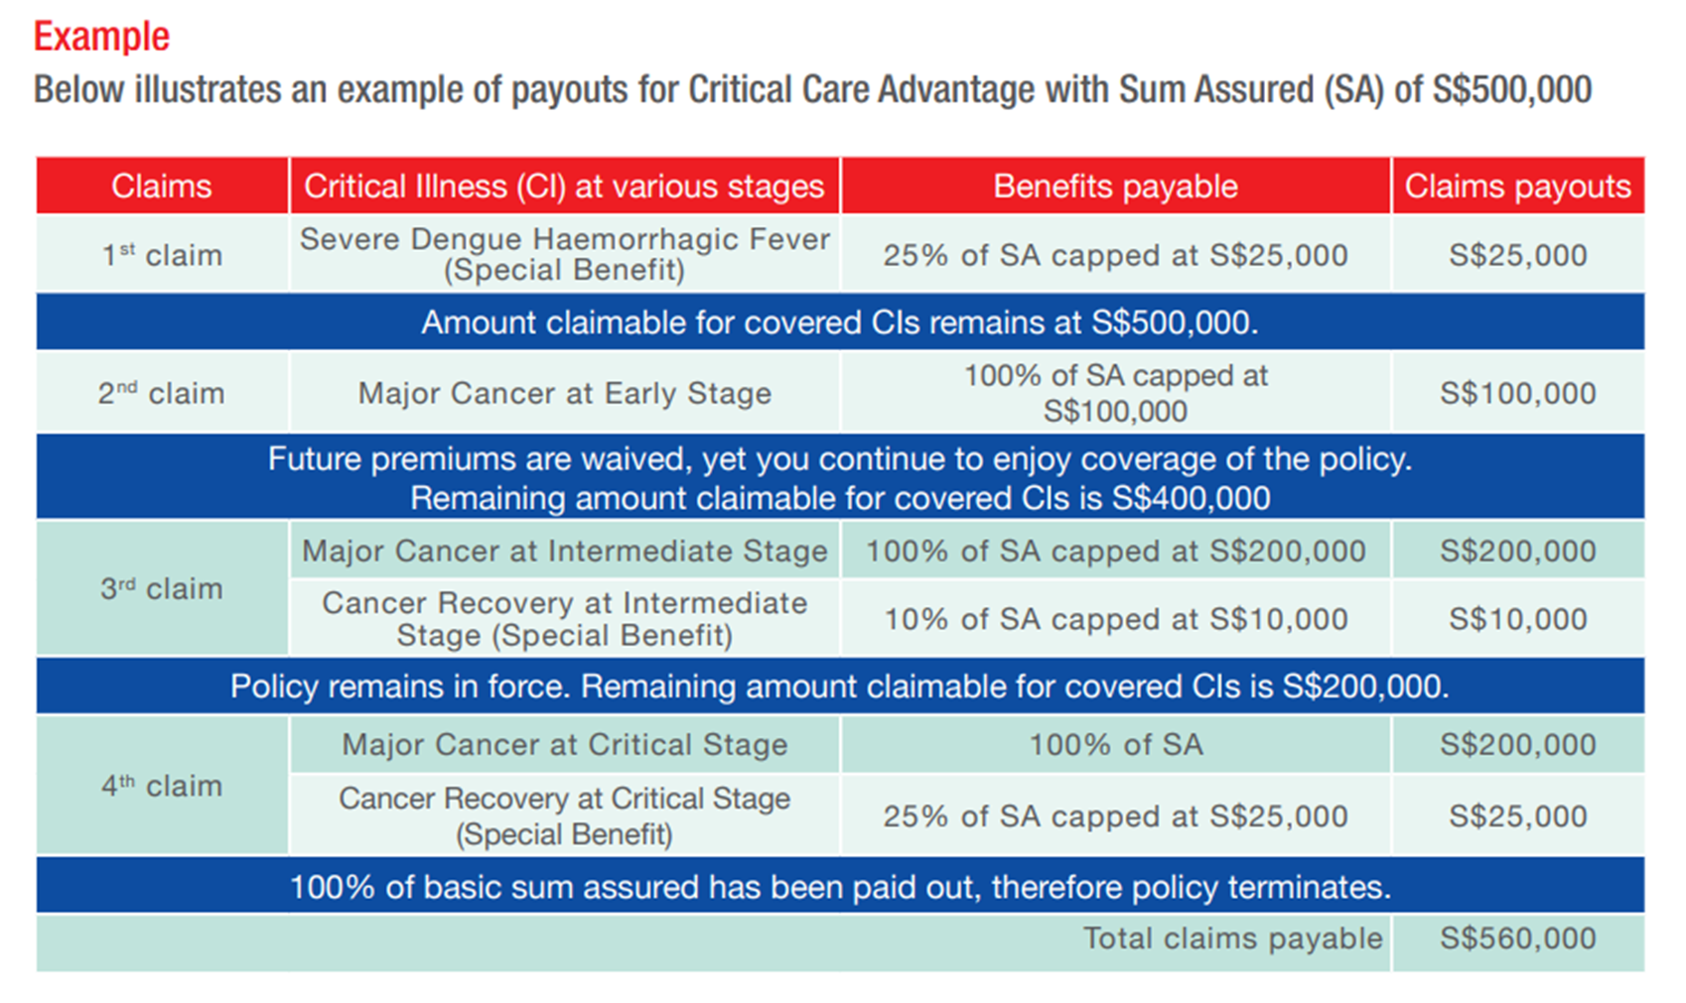 An example of the payouts given in the Great Eastern Critical Care Advantage brochure.